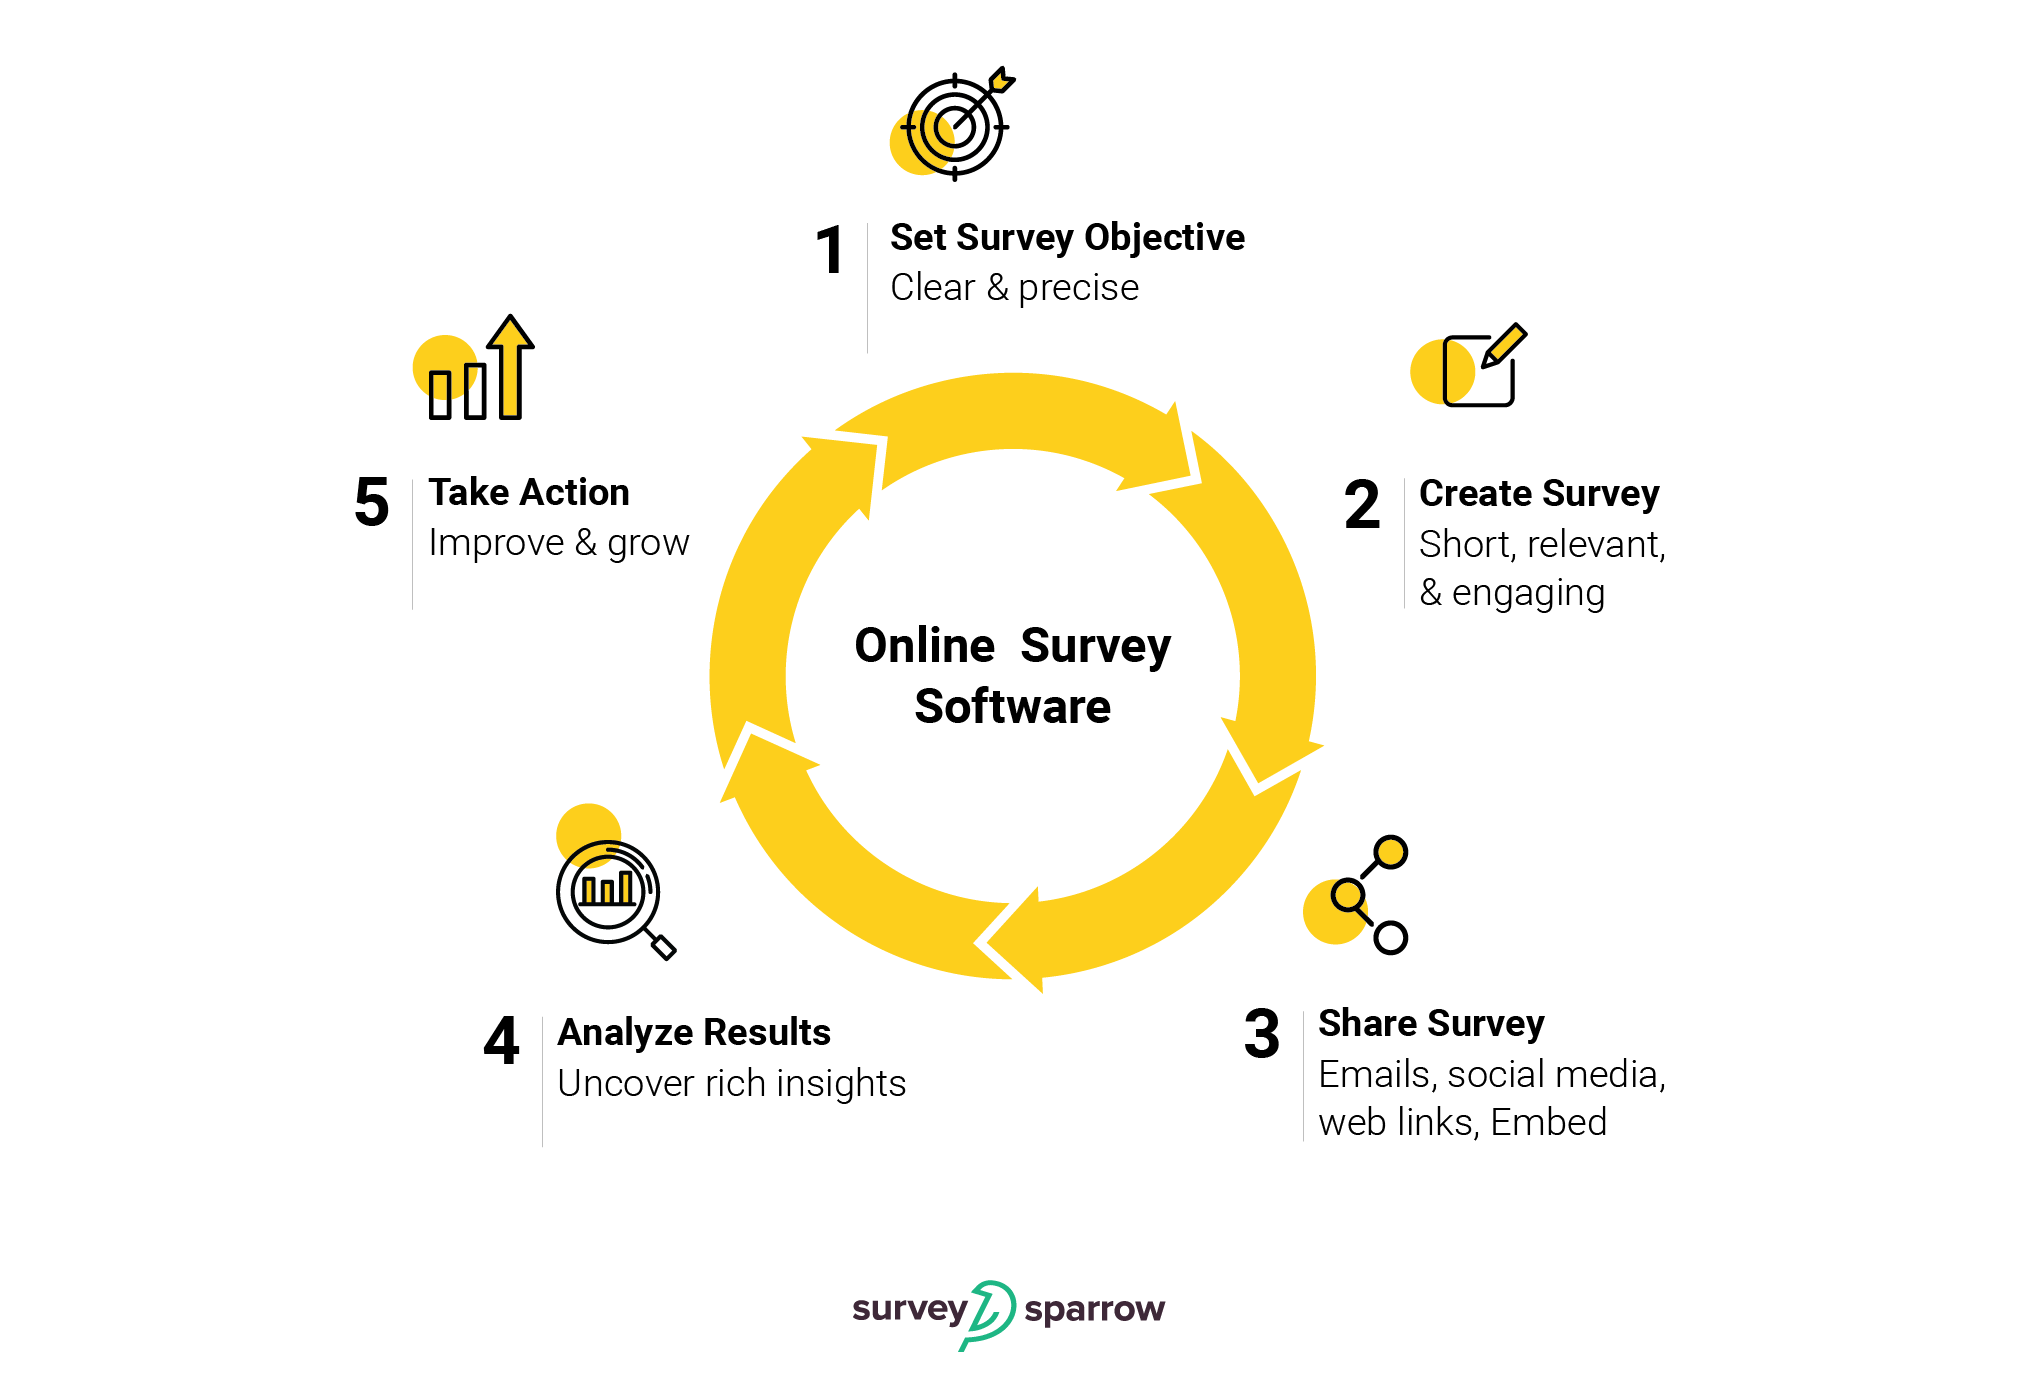 The complete lifecycle of employing an online survey software to collect feedback.